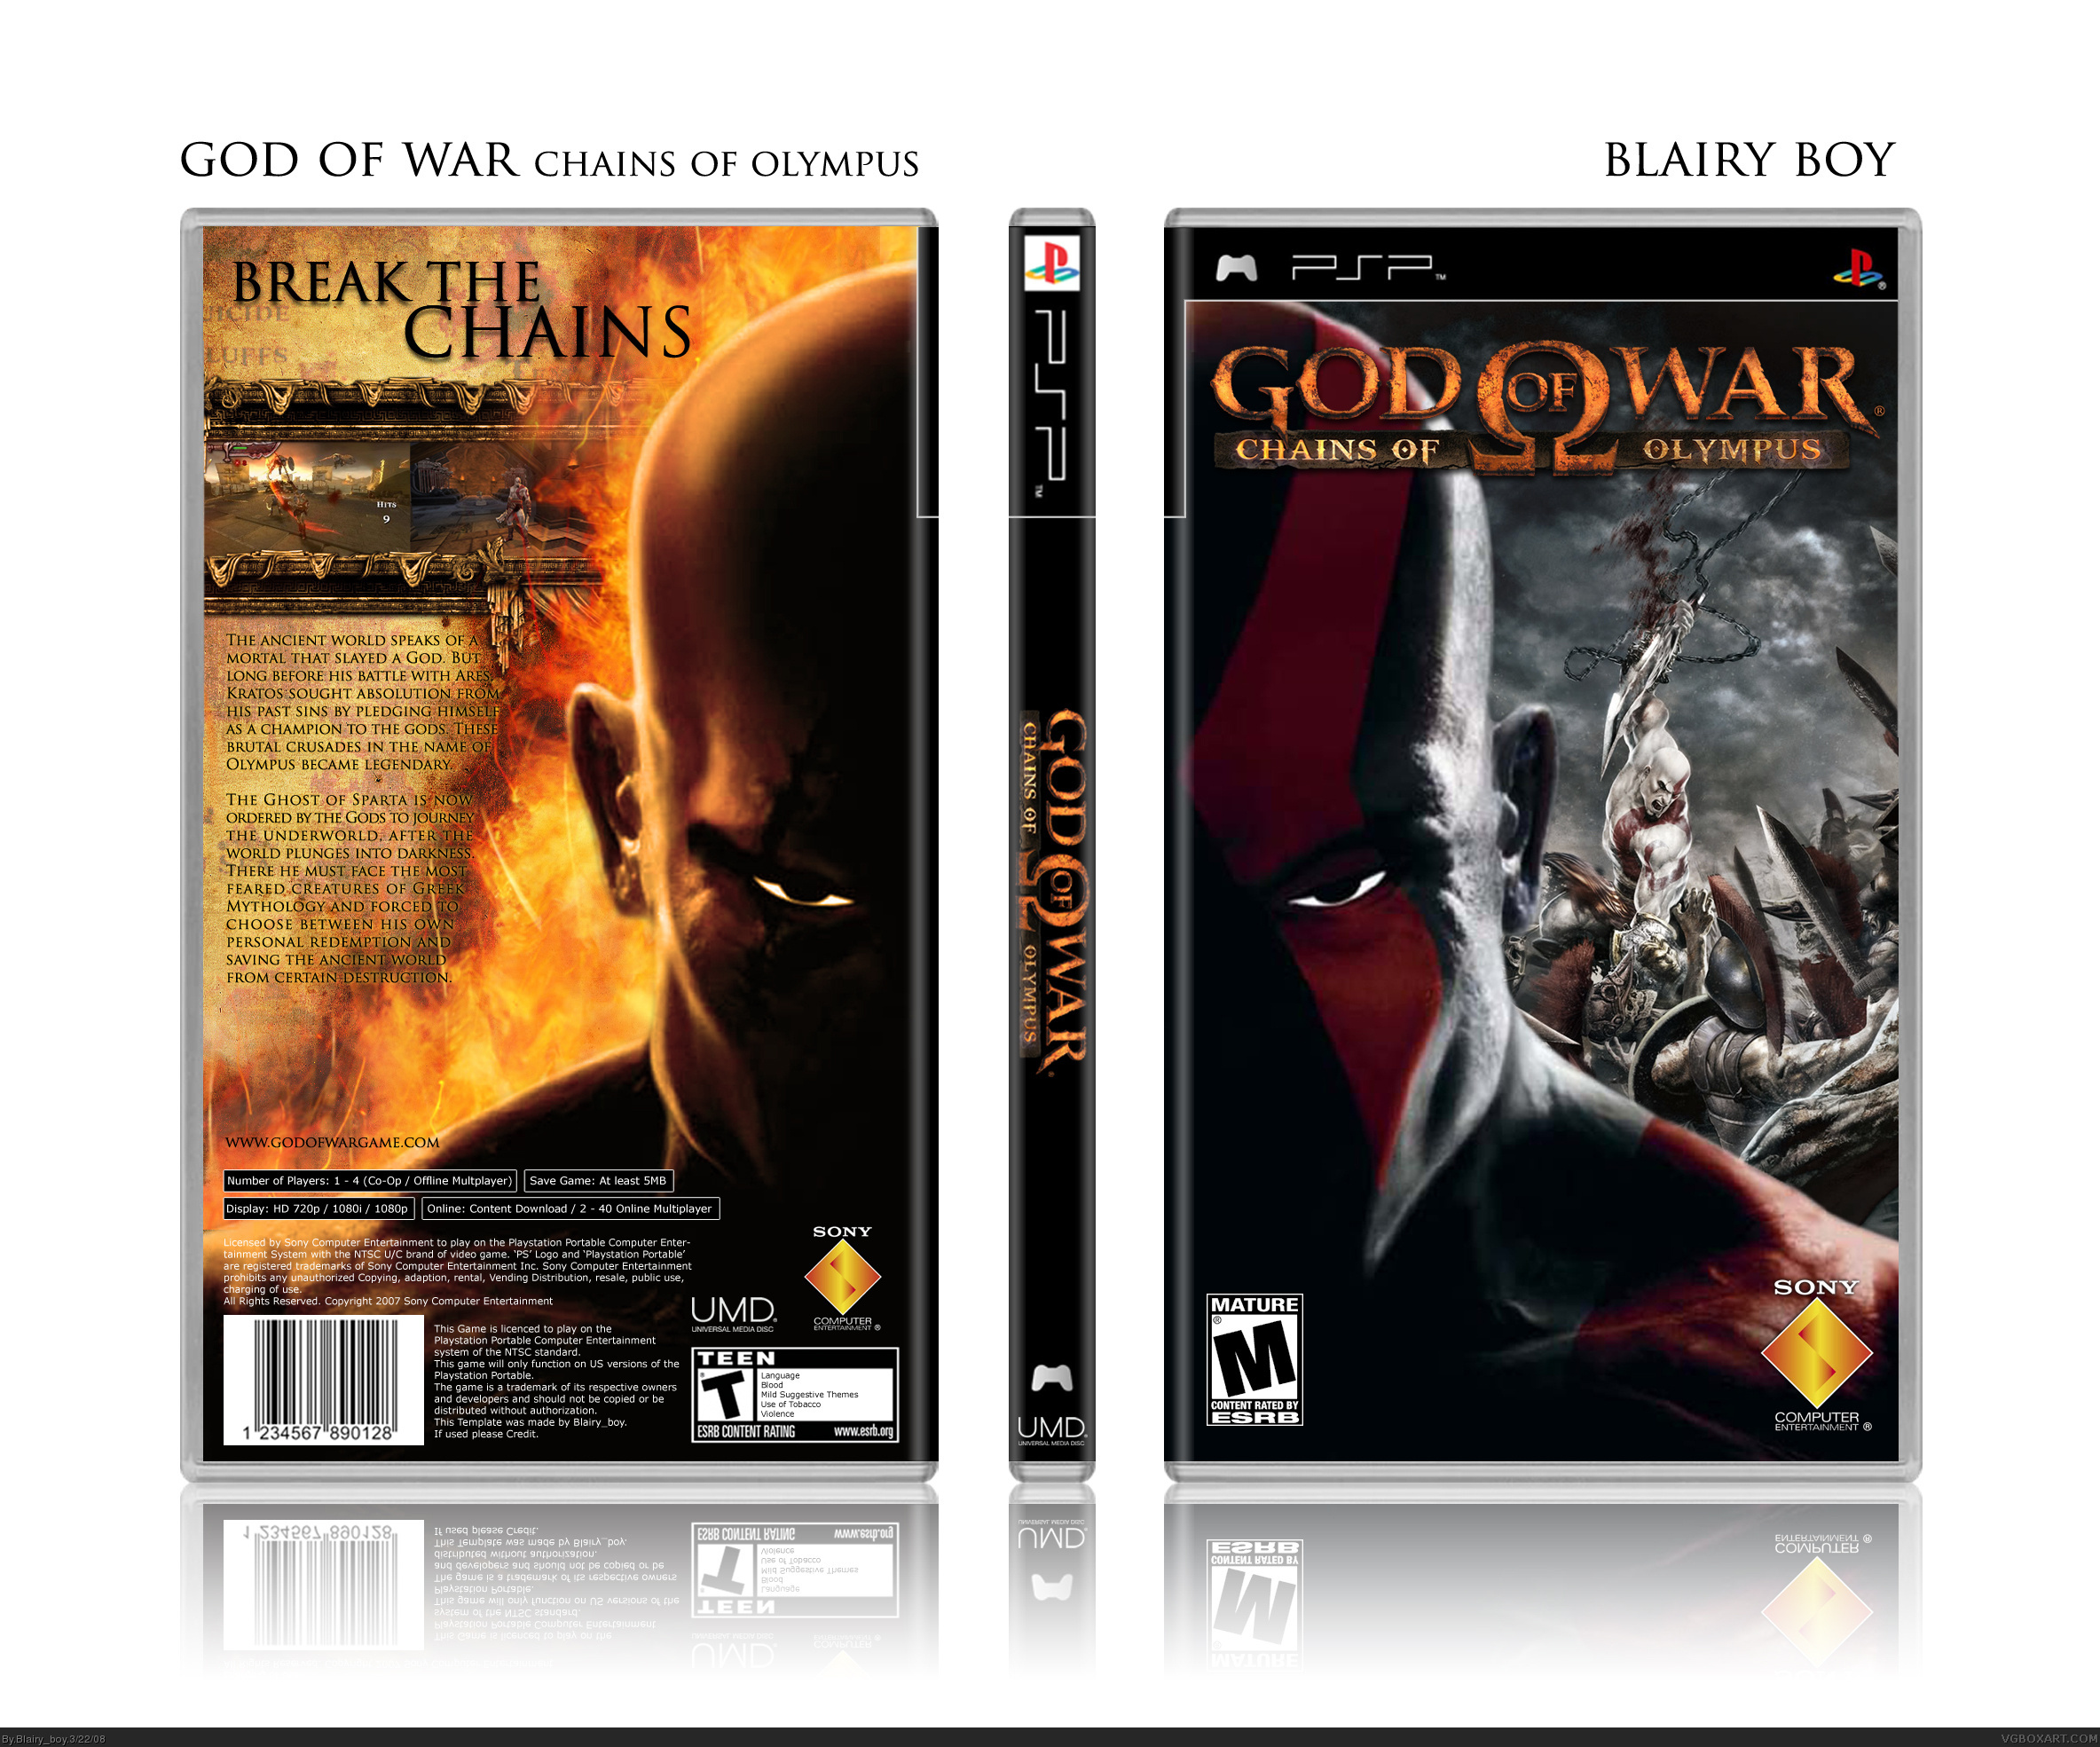 God of War: Chains of Olympus box cover